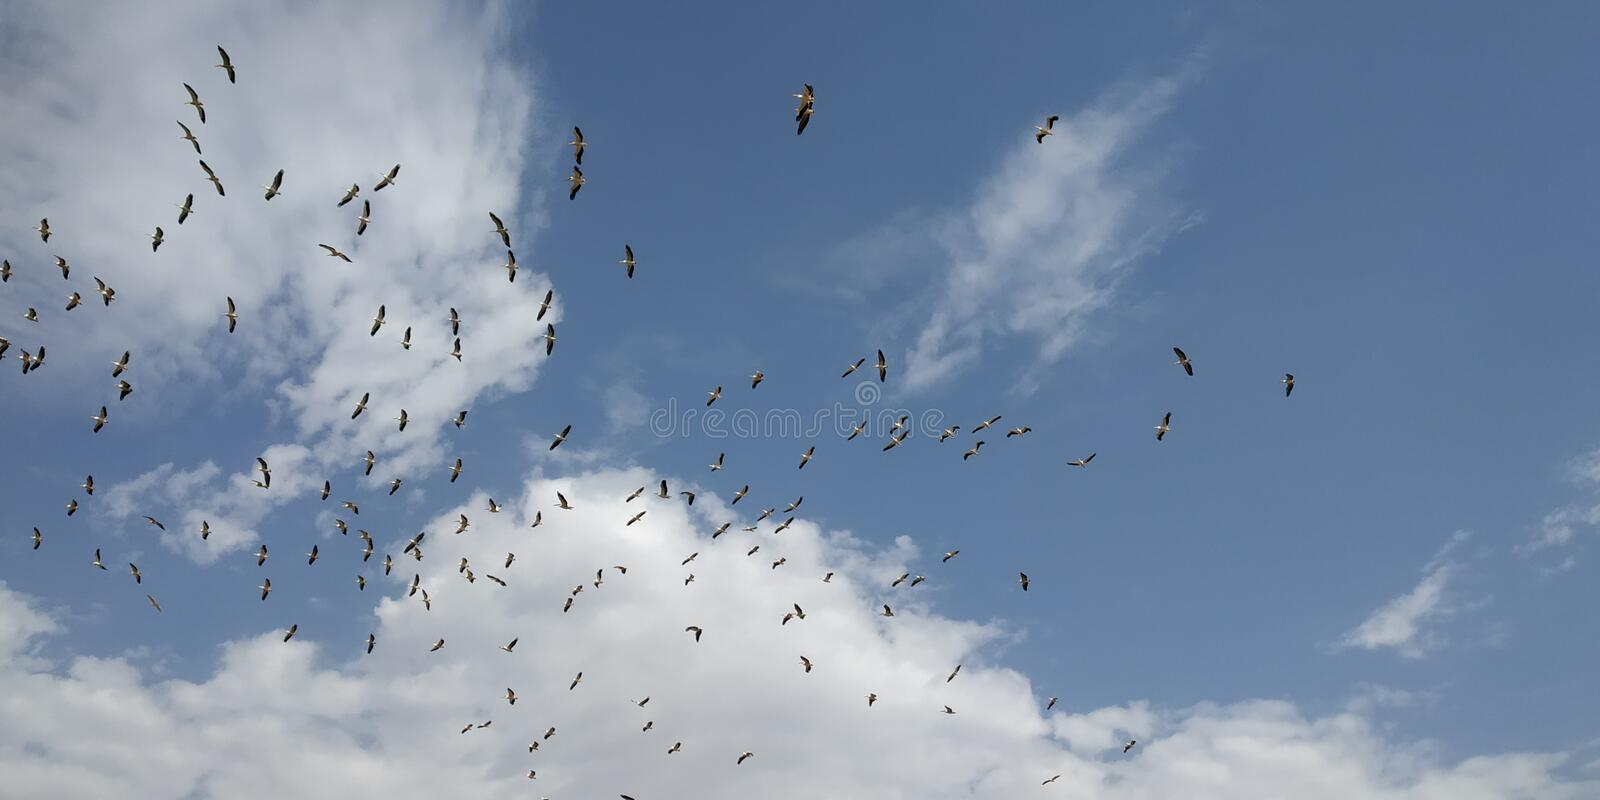 Its shows the beauti of bird with sku. The bird fill free in the sky and enjoy the life stock photo